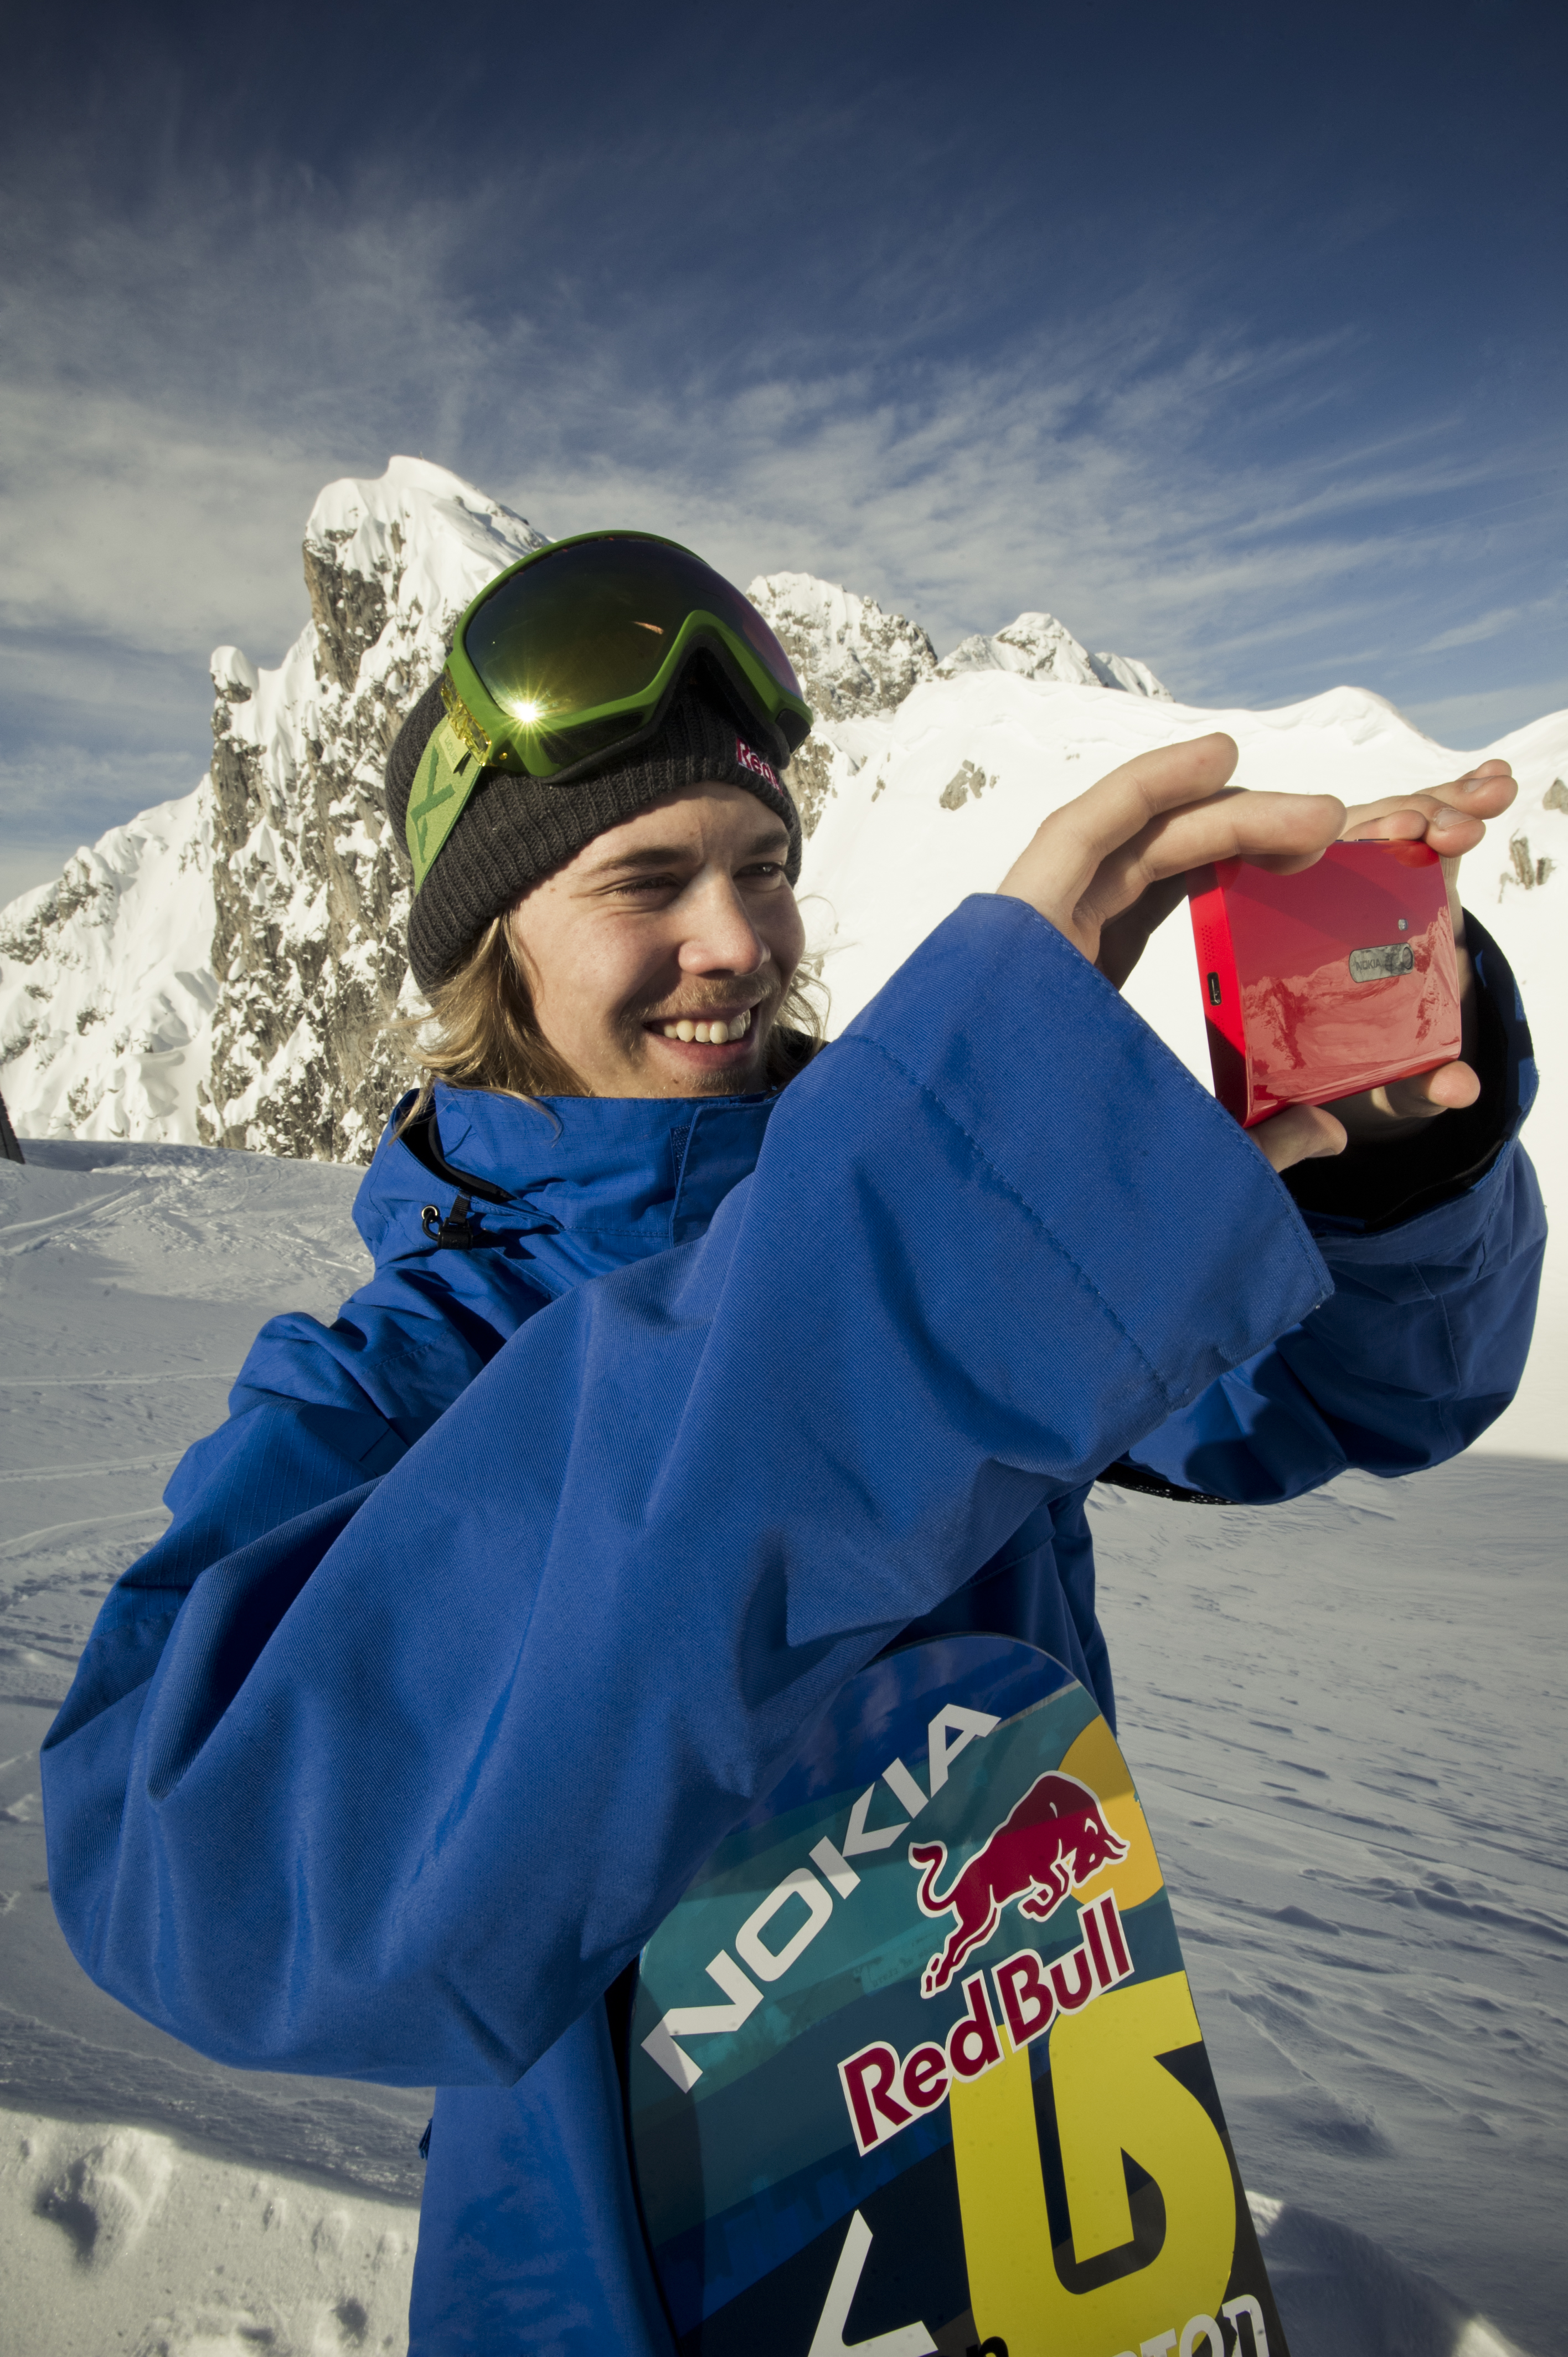 Burton Has An App Too - The Angry Snowboarder